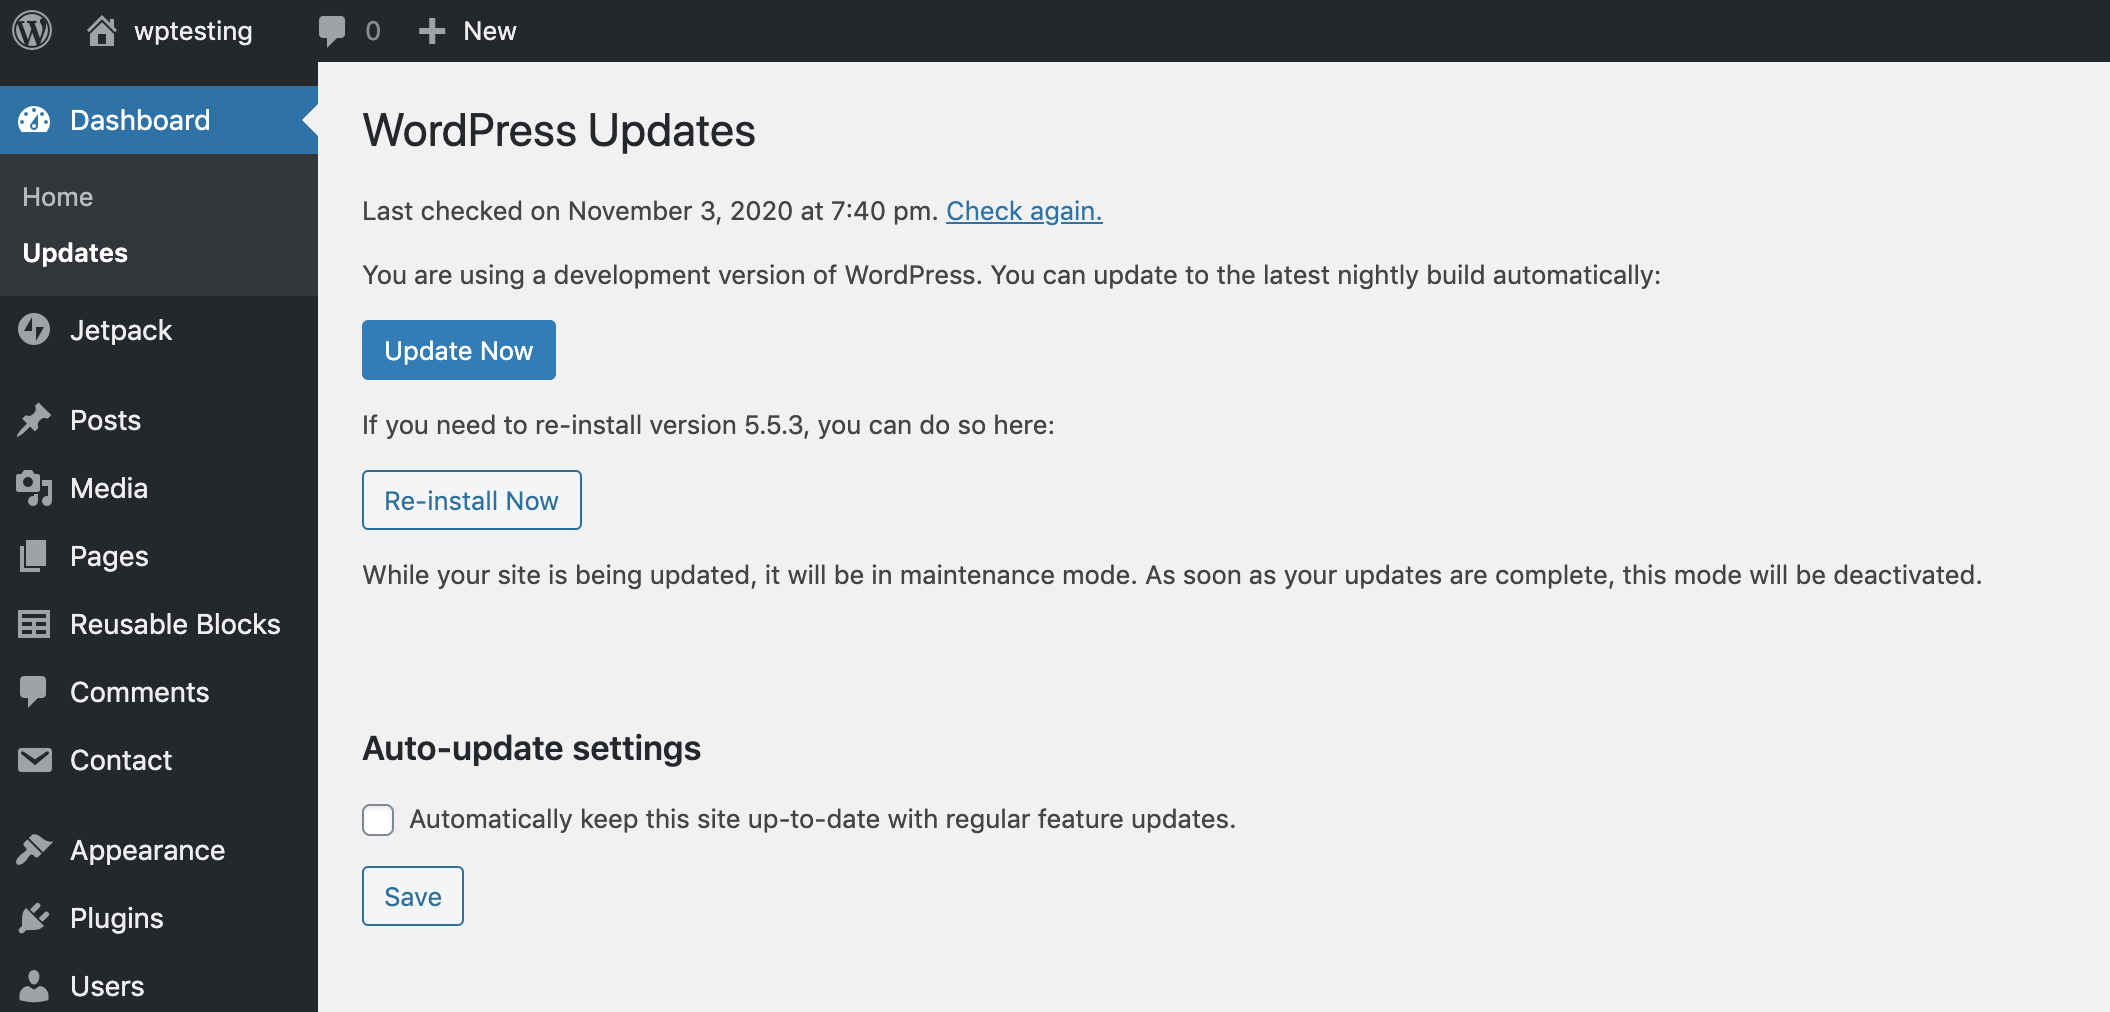 WordPress 5.6 to Add UI for Enabling Major Version Auto-Updates, Contributors Discuss Adding a Filter to Hide It